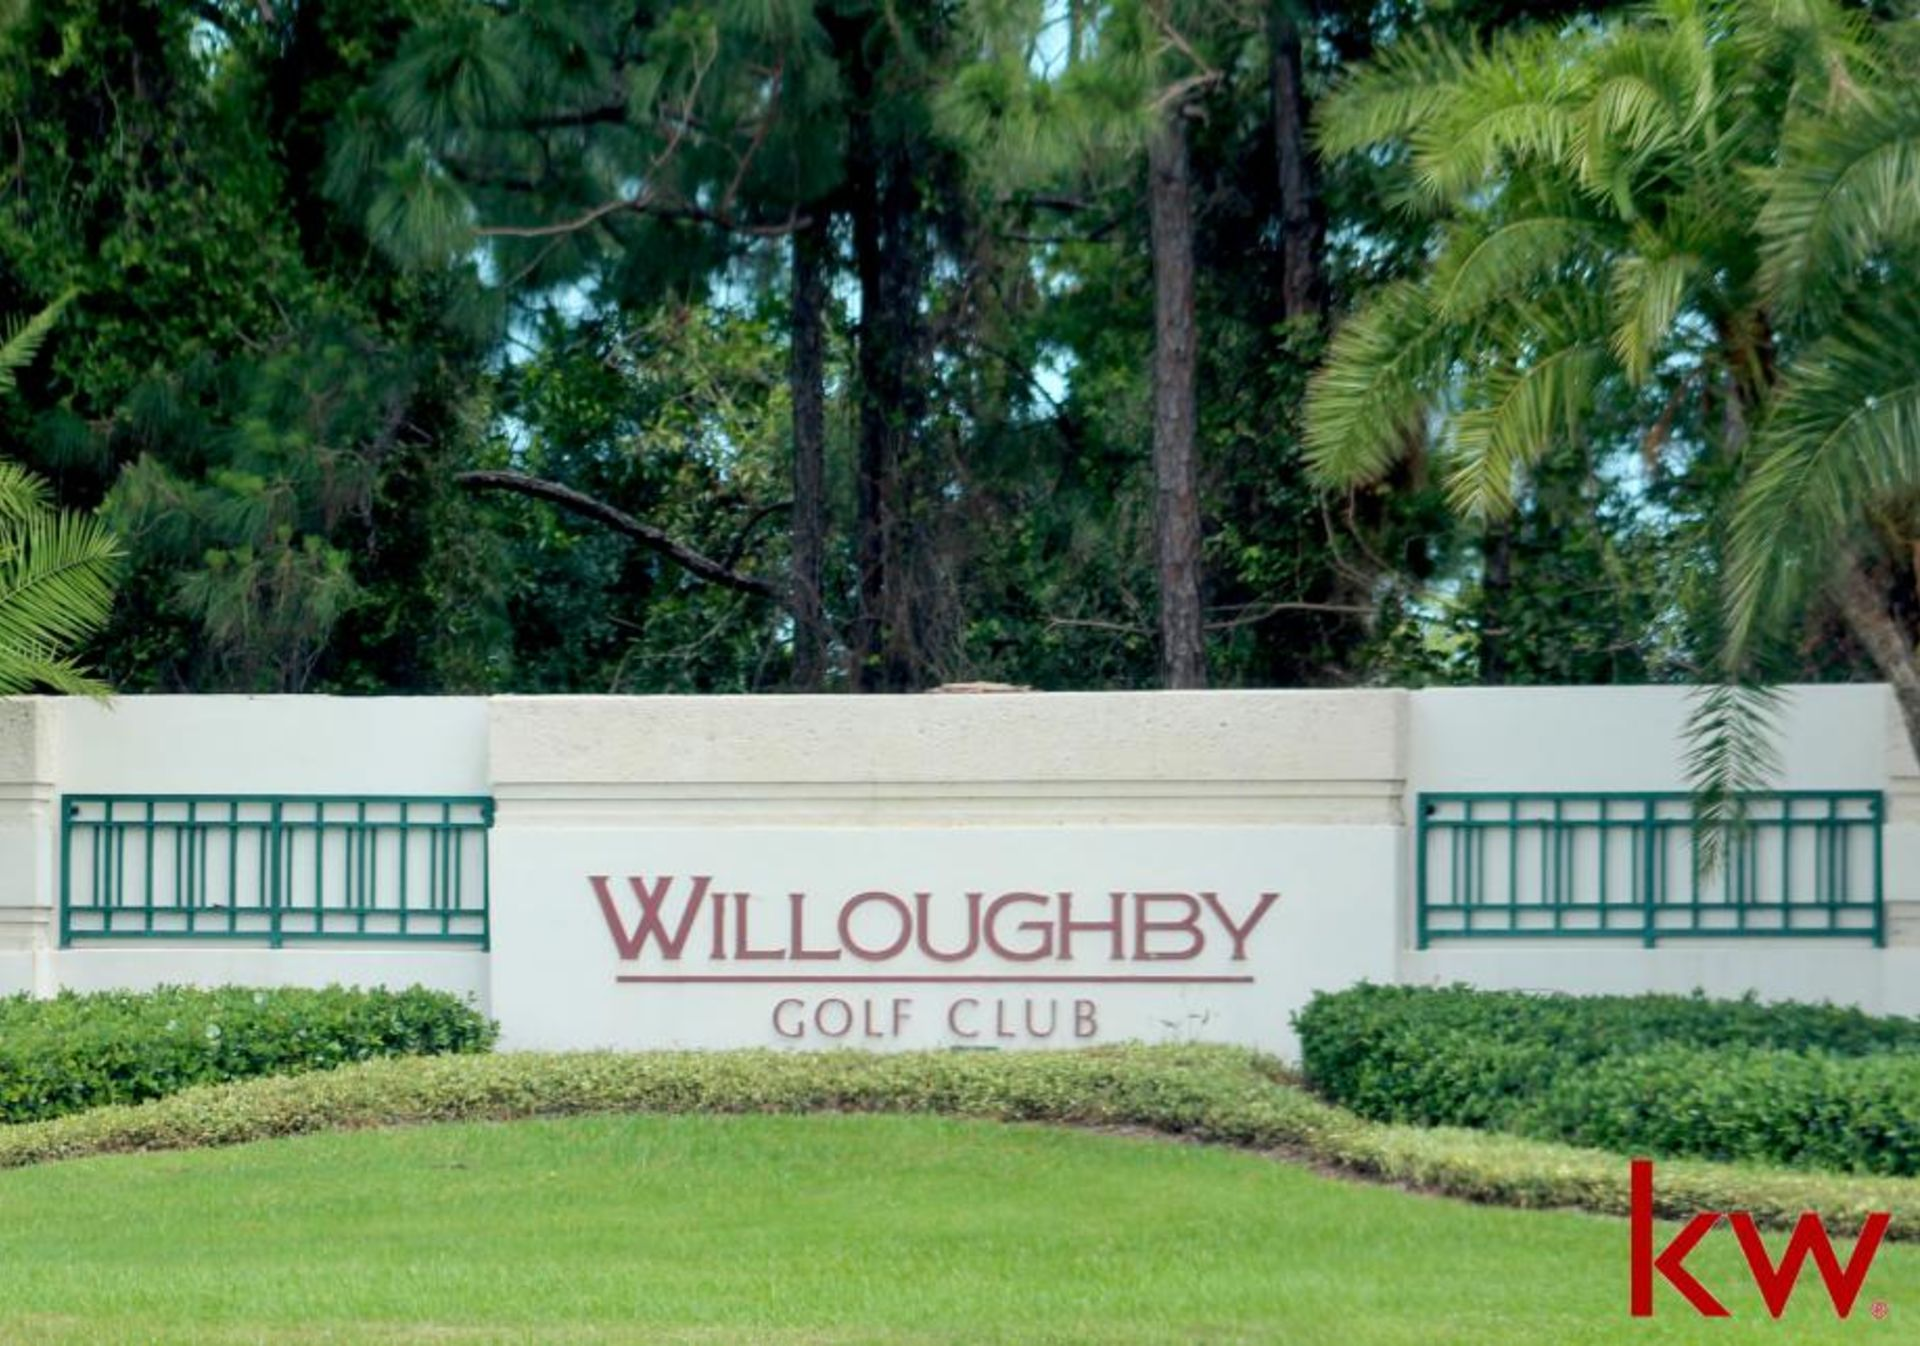 Willoughby Golf Club, Stuart FL